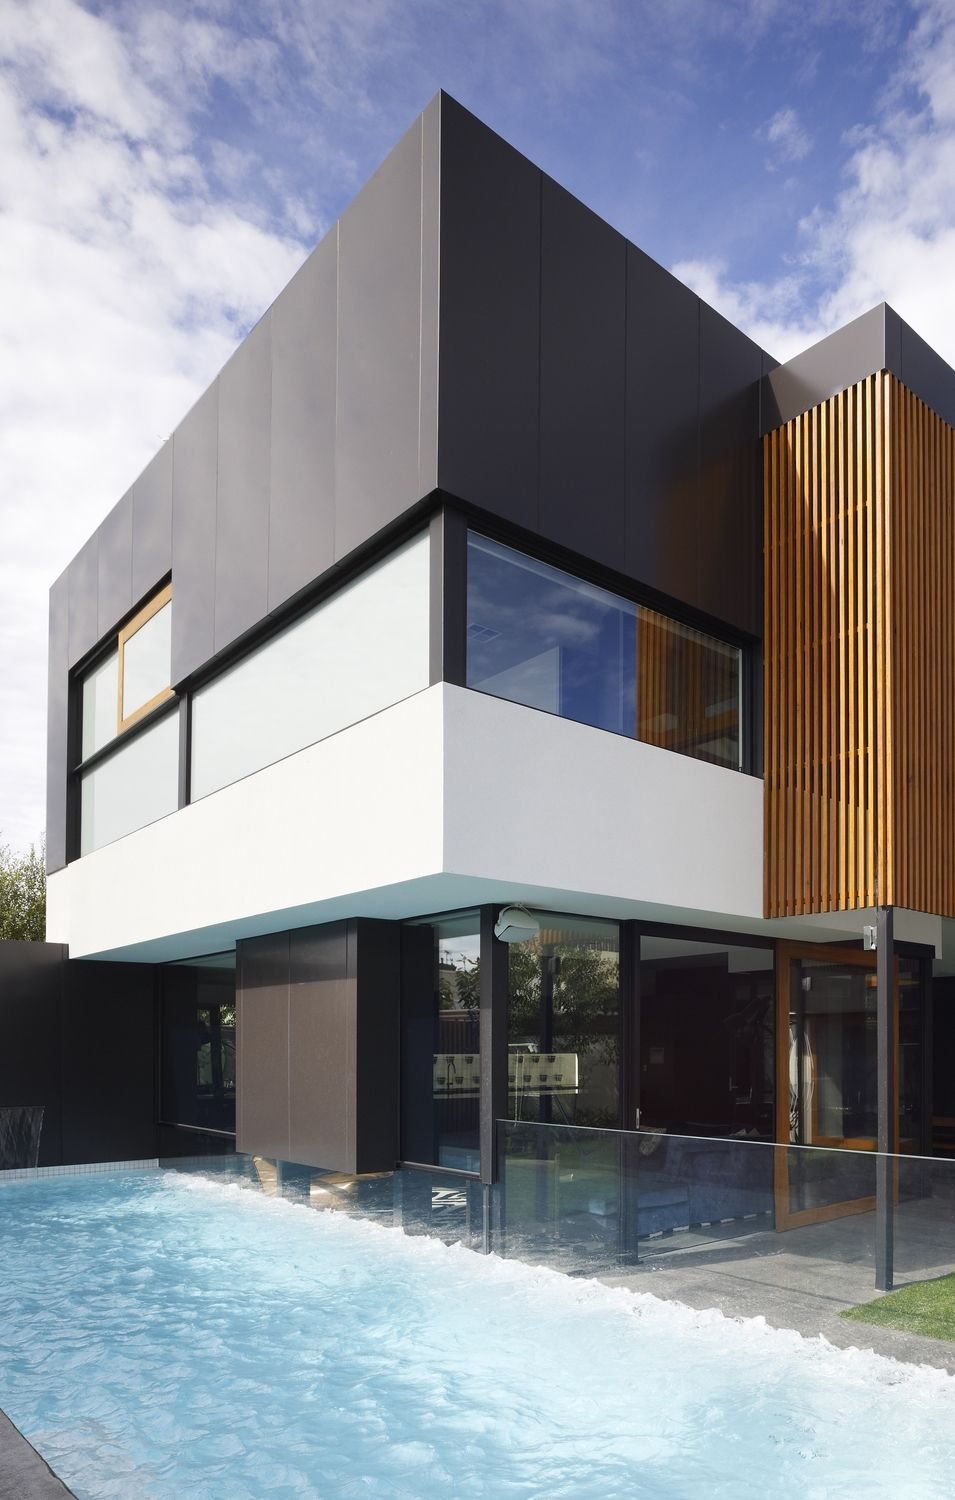 modern house interiors%0A World of Architecture  Dark Contemporary Home by Steve Domoney  Architecture  Architecture InteriorsModern ArchitectureAmazing HousesHouse